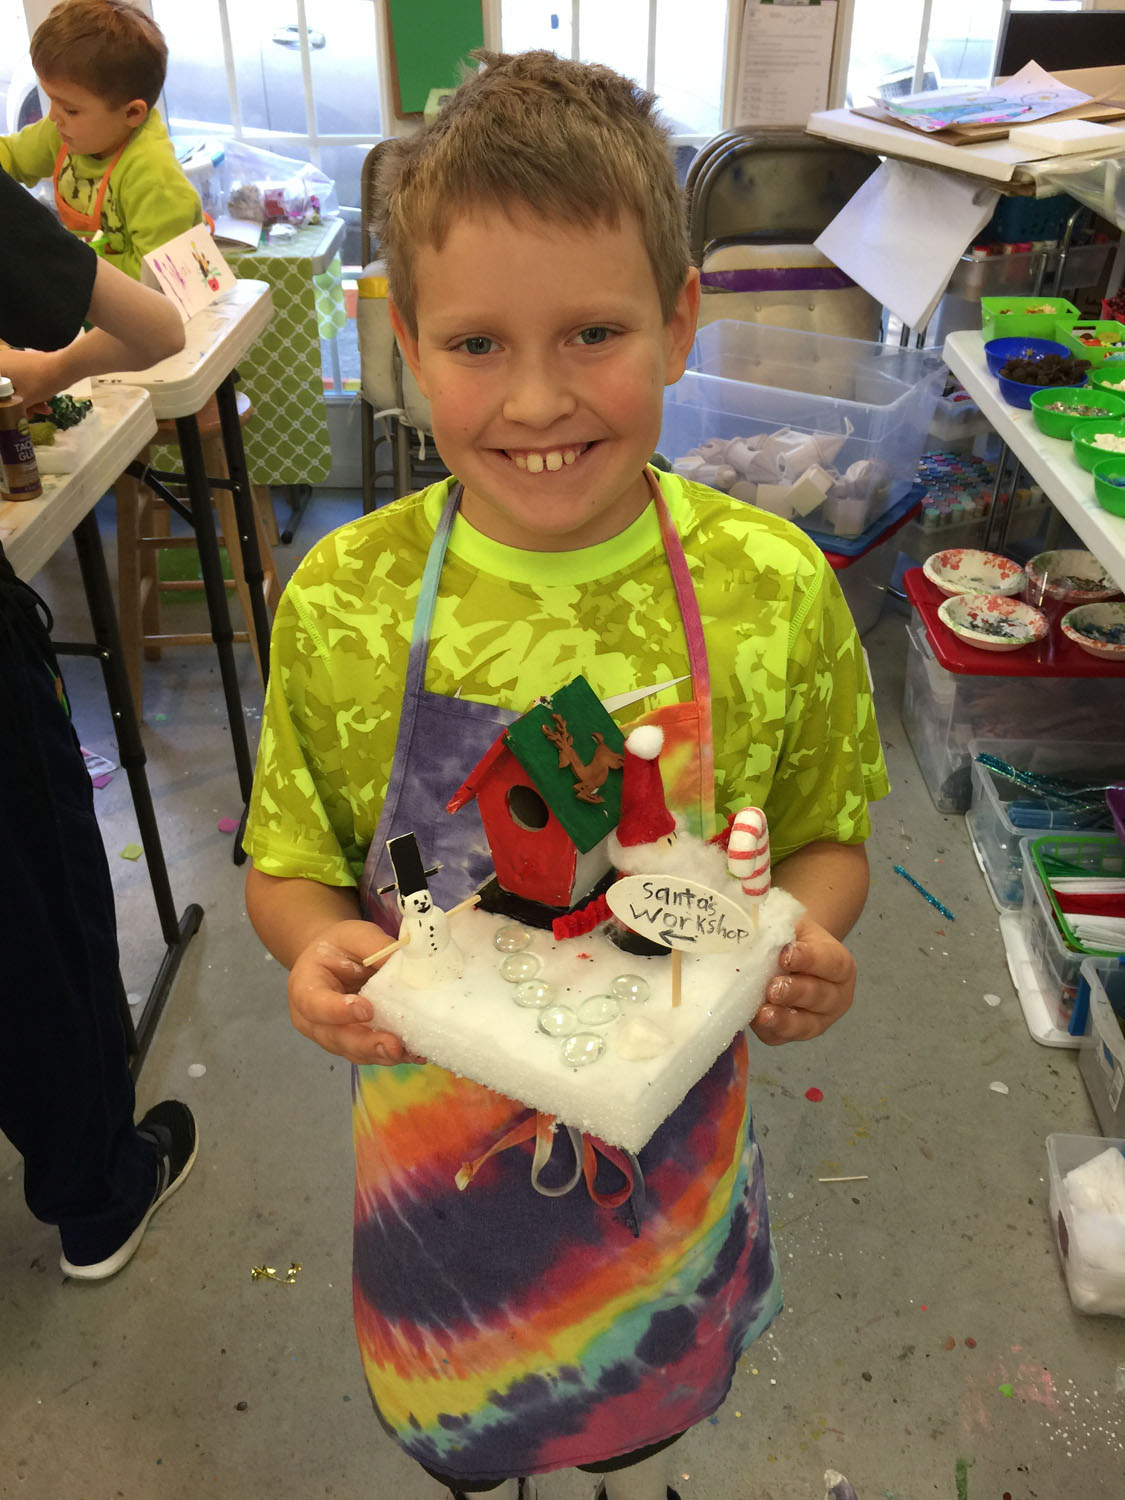 kids-art-parties-classes-and-camps-in-greensboro-nc-with-artist-tracey-j-marshallIMG_8008.jpg